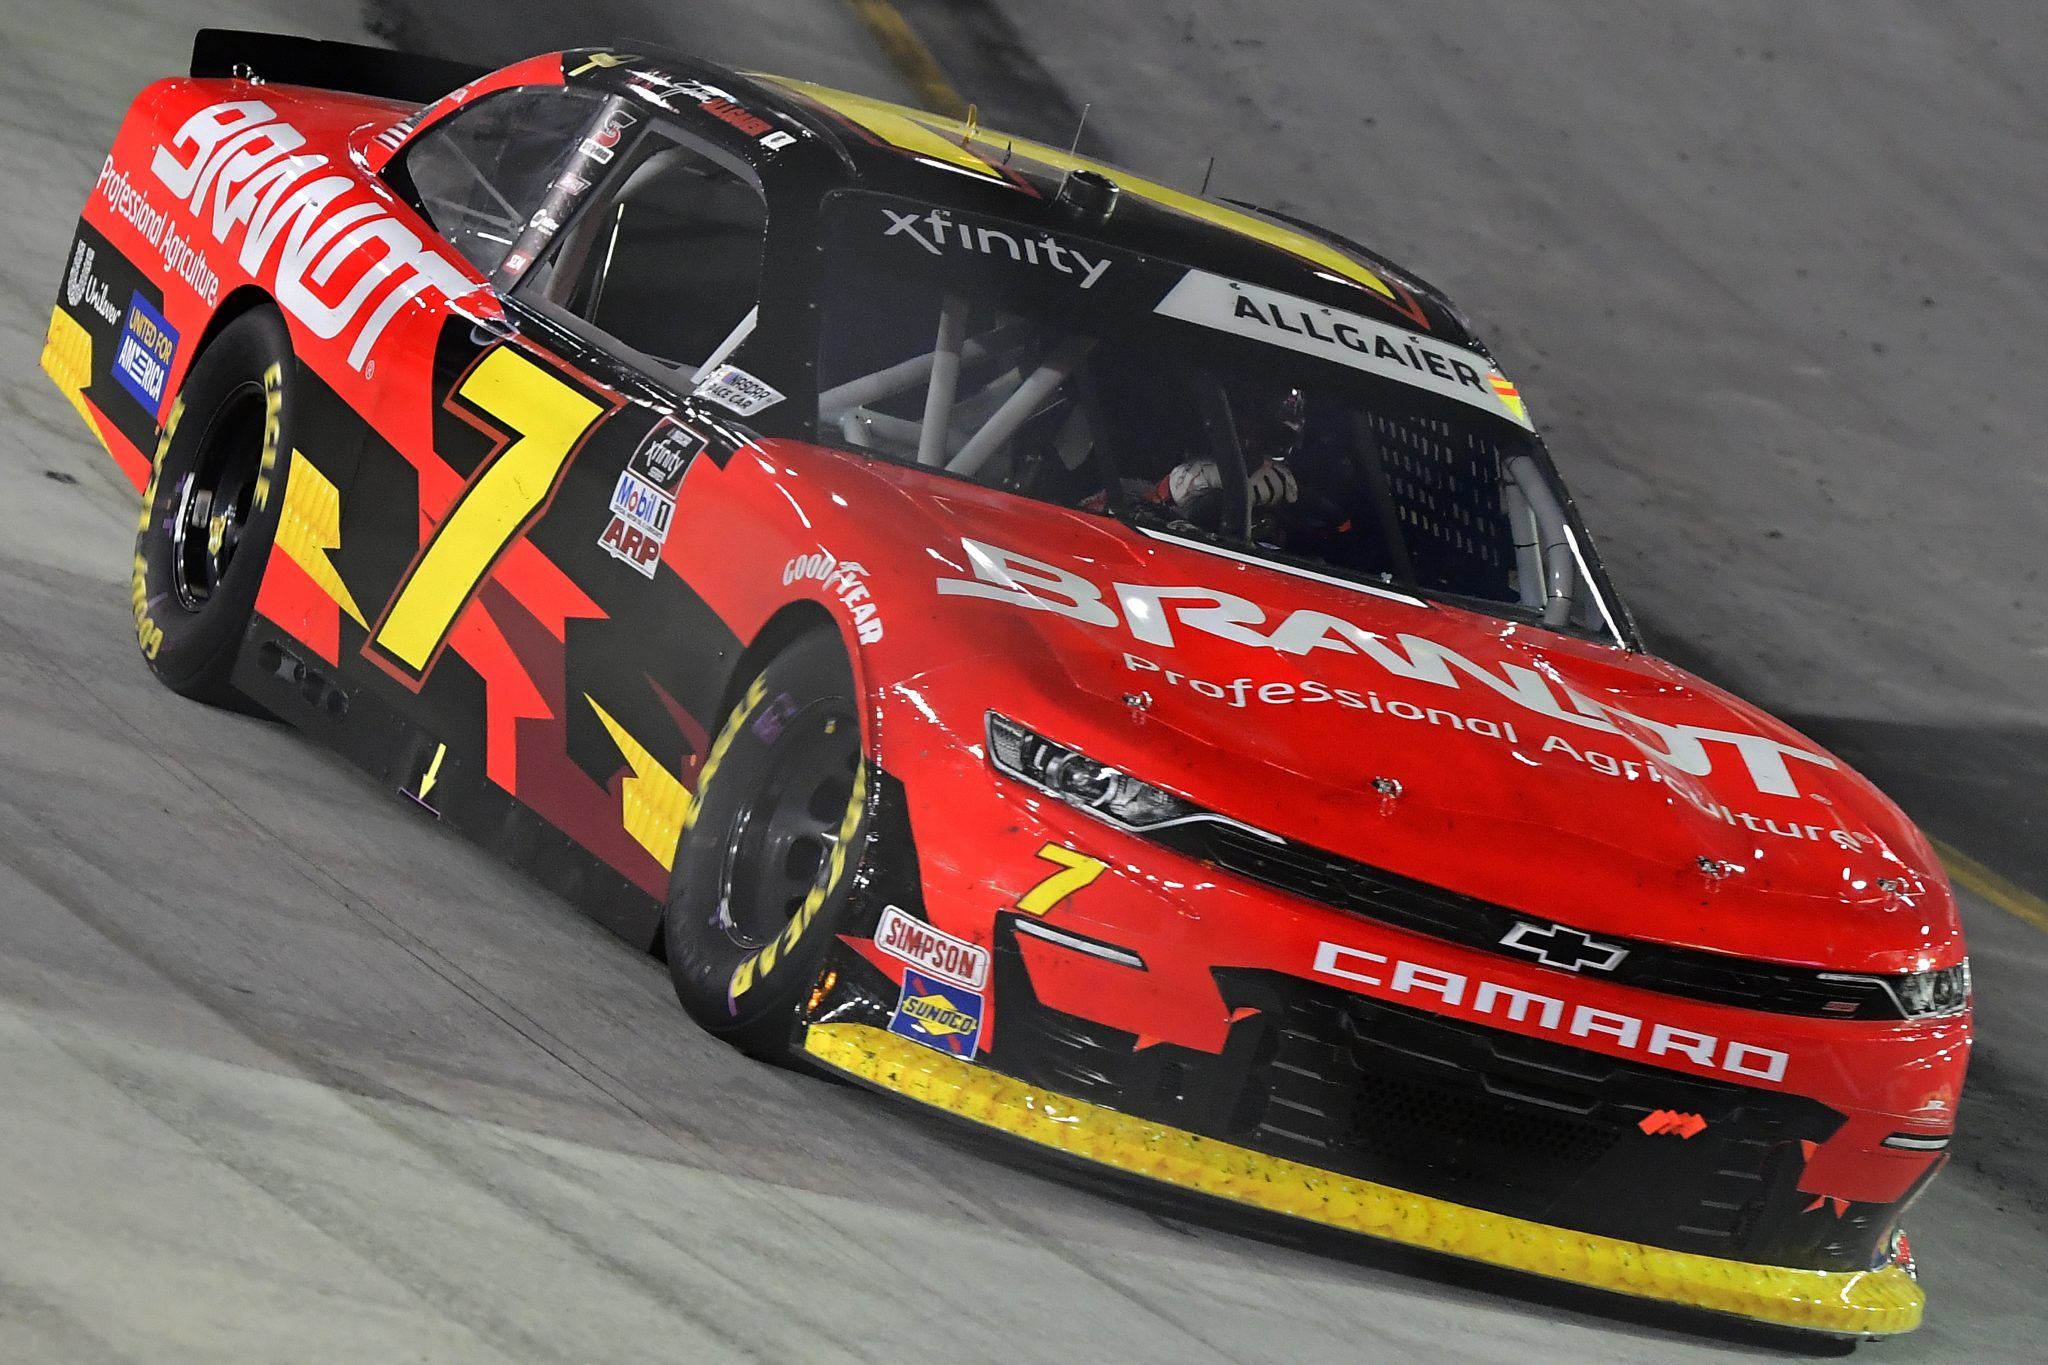 BRISTOL, TENNESSEE - SEPTEMBER 17: Justin Allgaier, driver of the #7 BRANDT Chevrolet, drives during the NASCAR Xfinity Series Food City 300 at Bristol Motor Speedway on September 17, 2021 in Bristol, Tennessee. (Photo by Logan Riely/Getty Images) | Getty Images